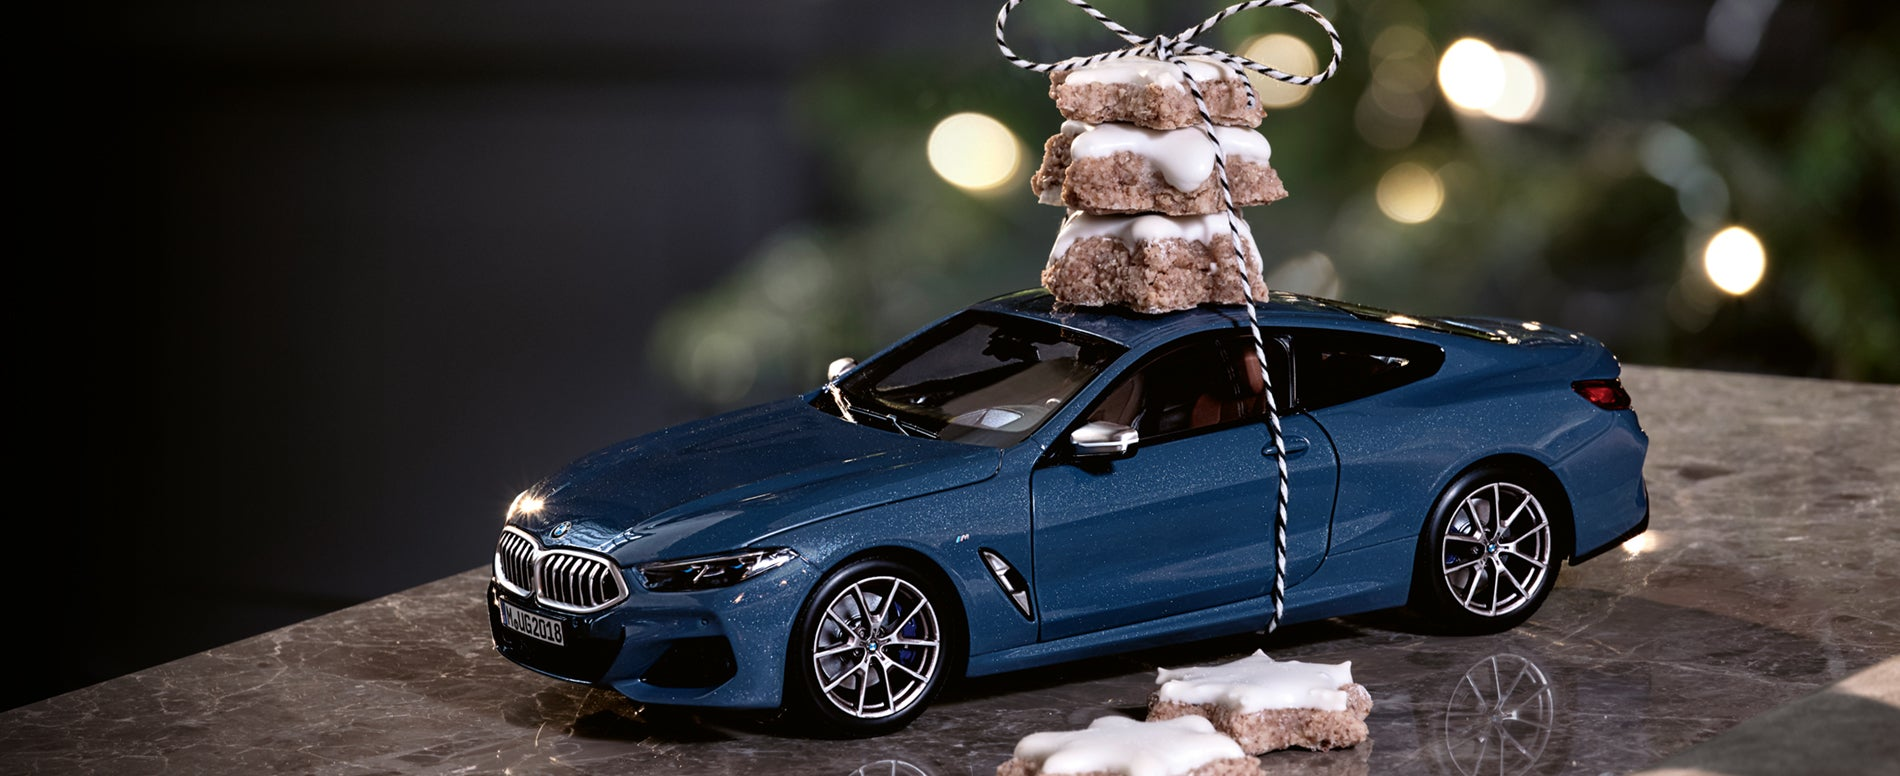 BMW Of Newton >> Bmw Of Newton Bmw Dealer Newton Nj New And Used Bmw Dealer